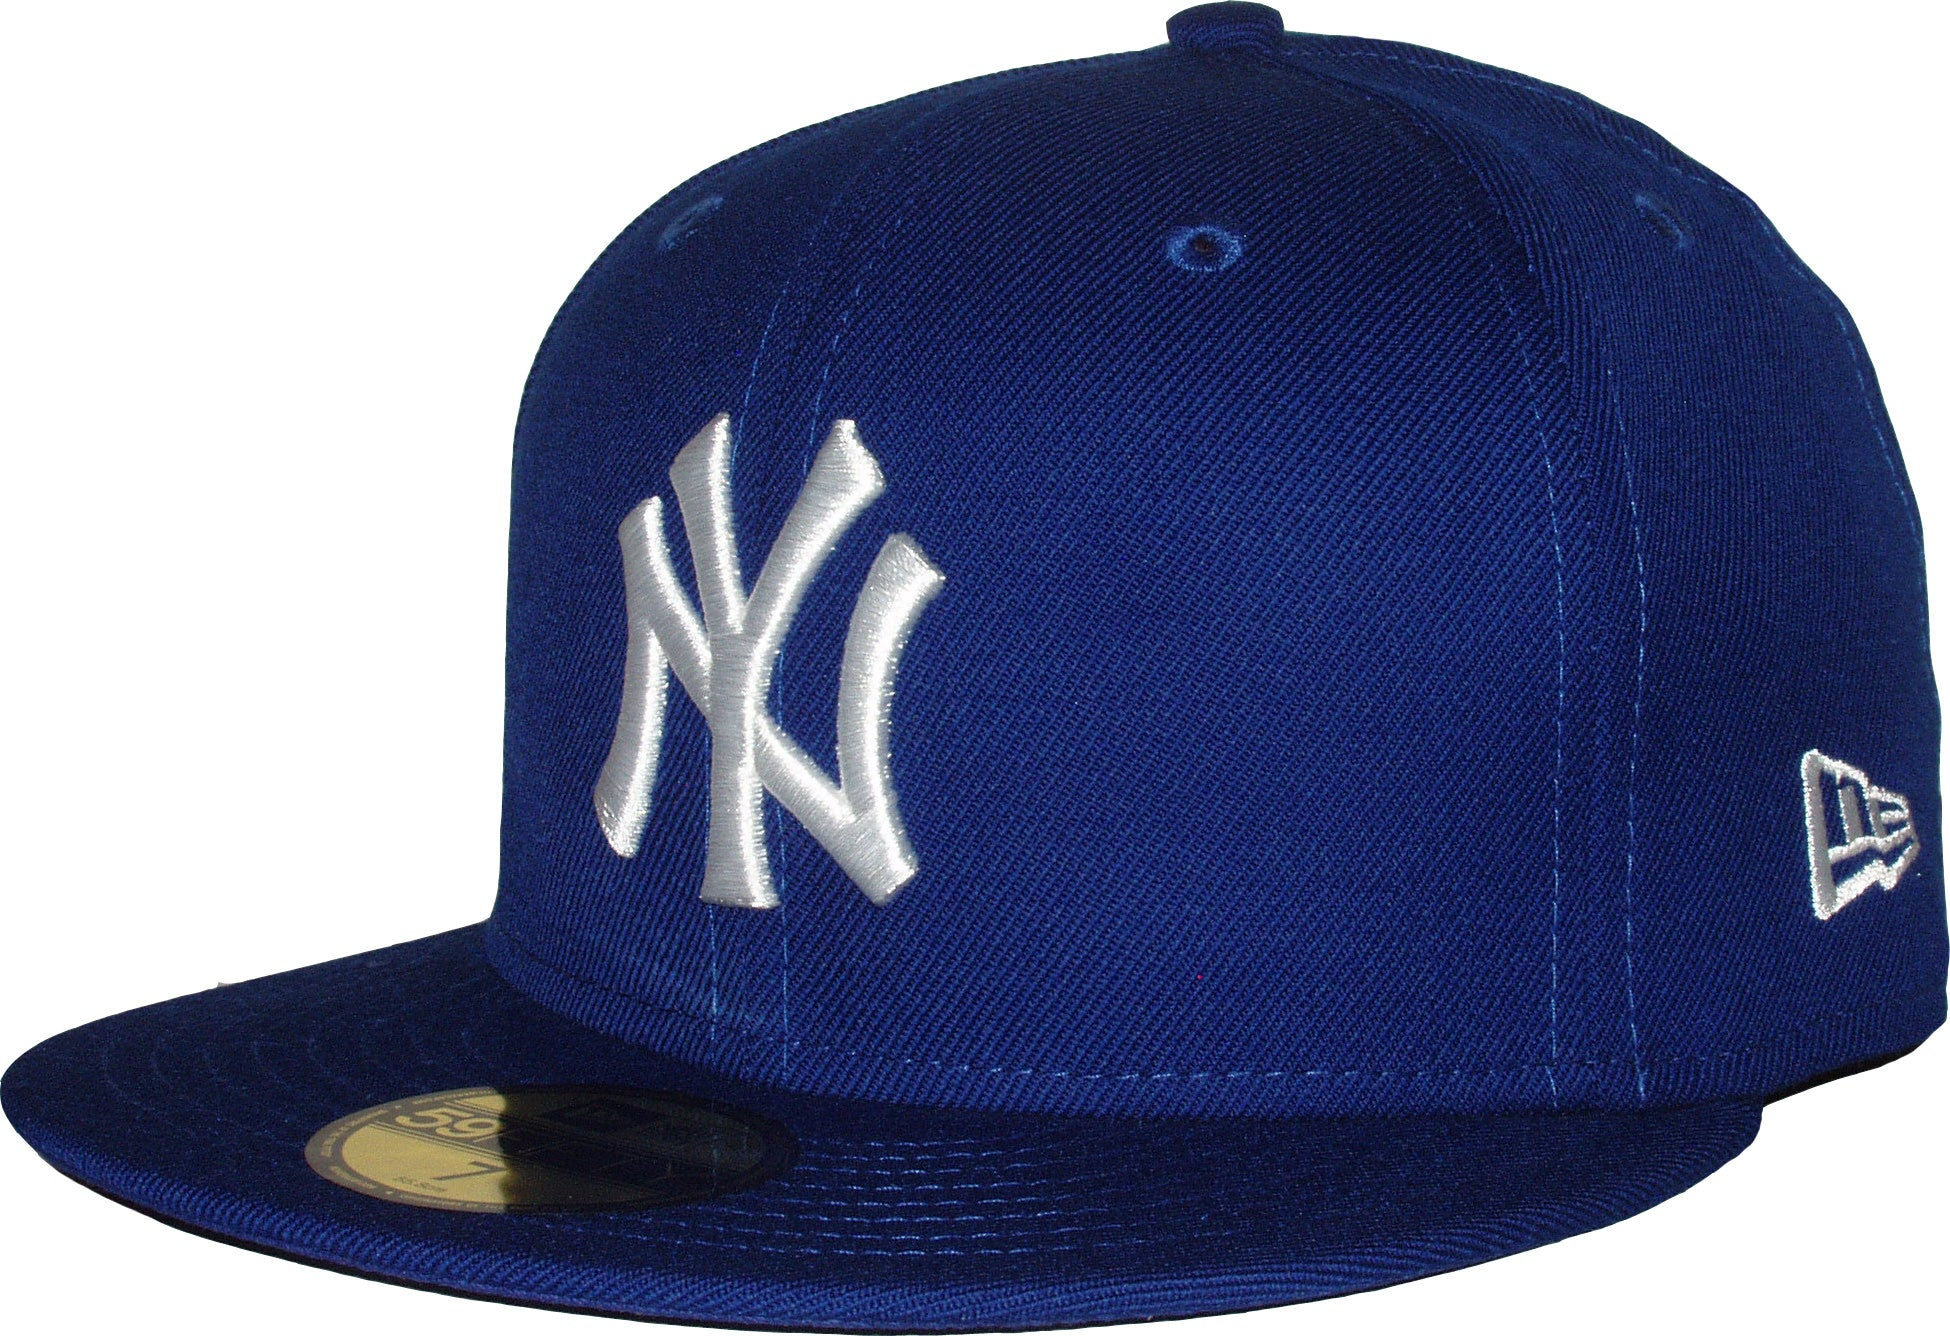 NY Yankees New Era 5950 MLB Royal Blue White Baseball Cap + Gift Box ... 1f4ce9b092b1